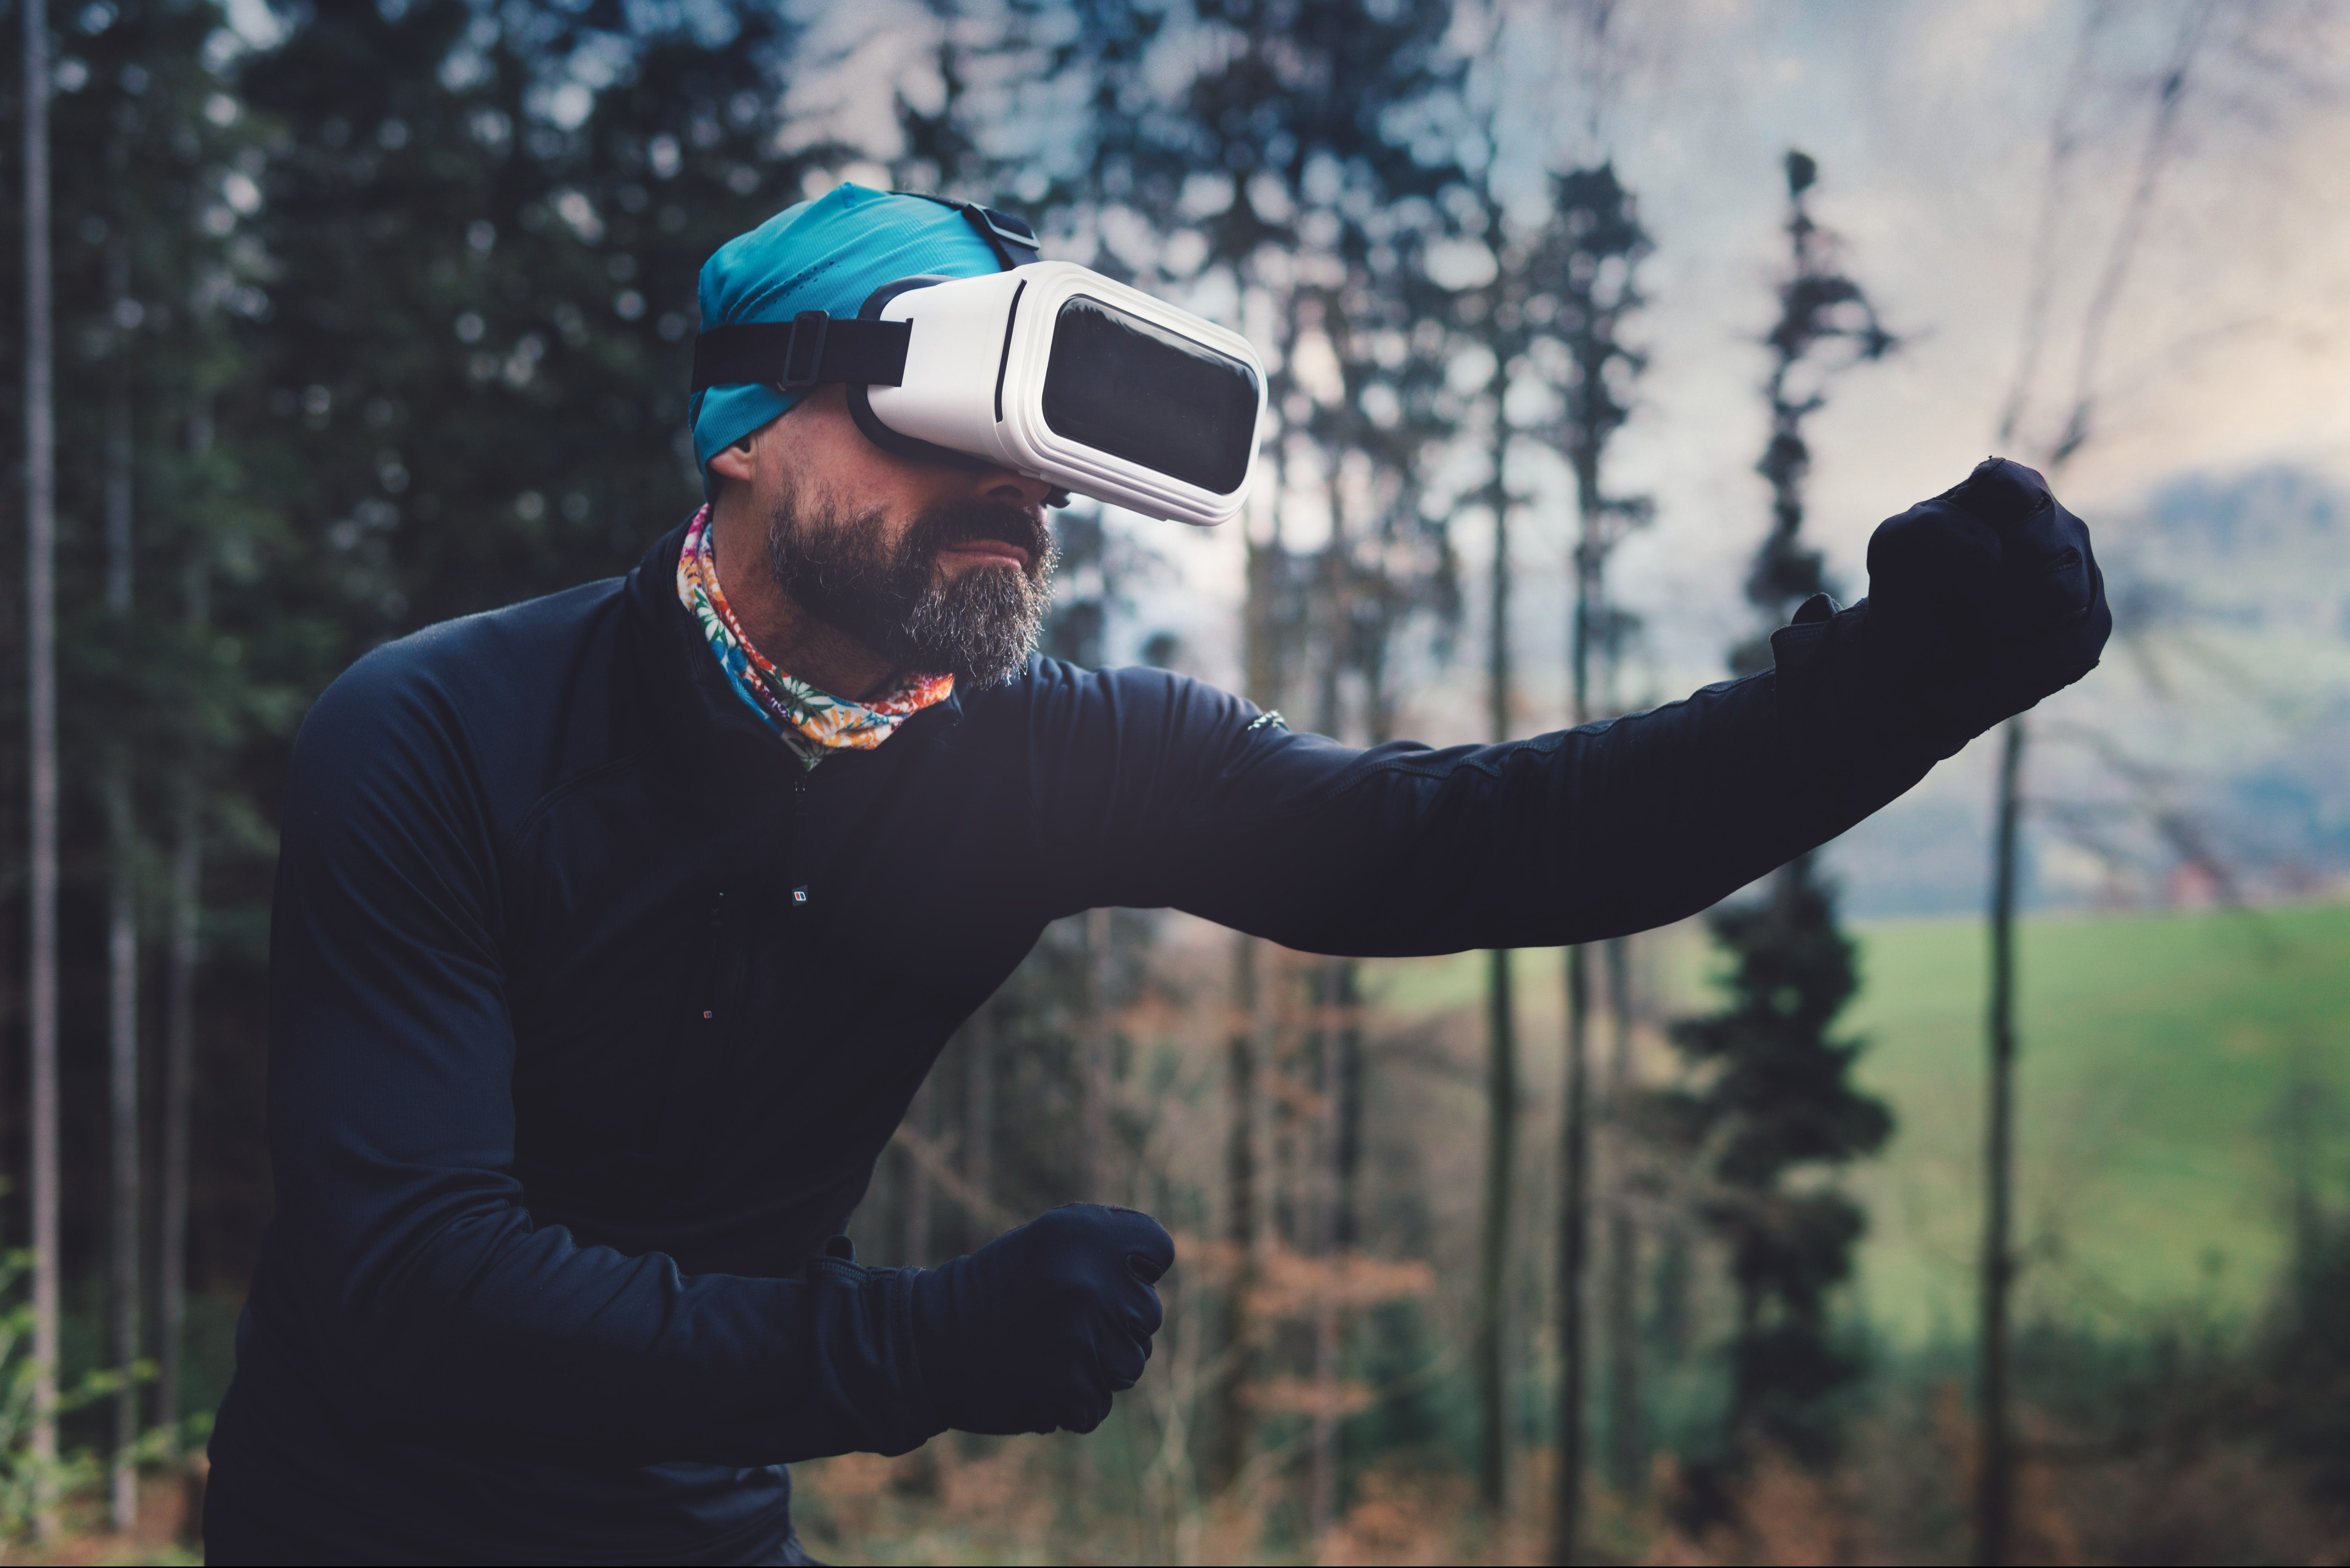 Virtual reality can improve exercise performance